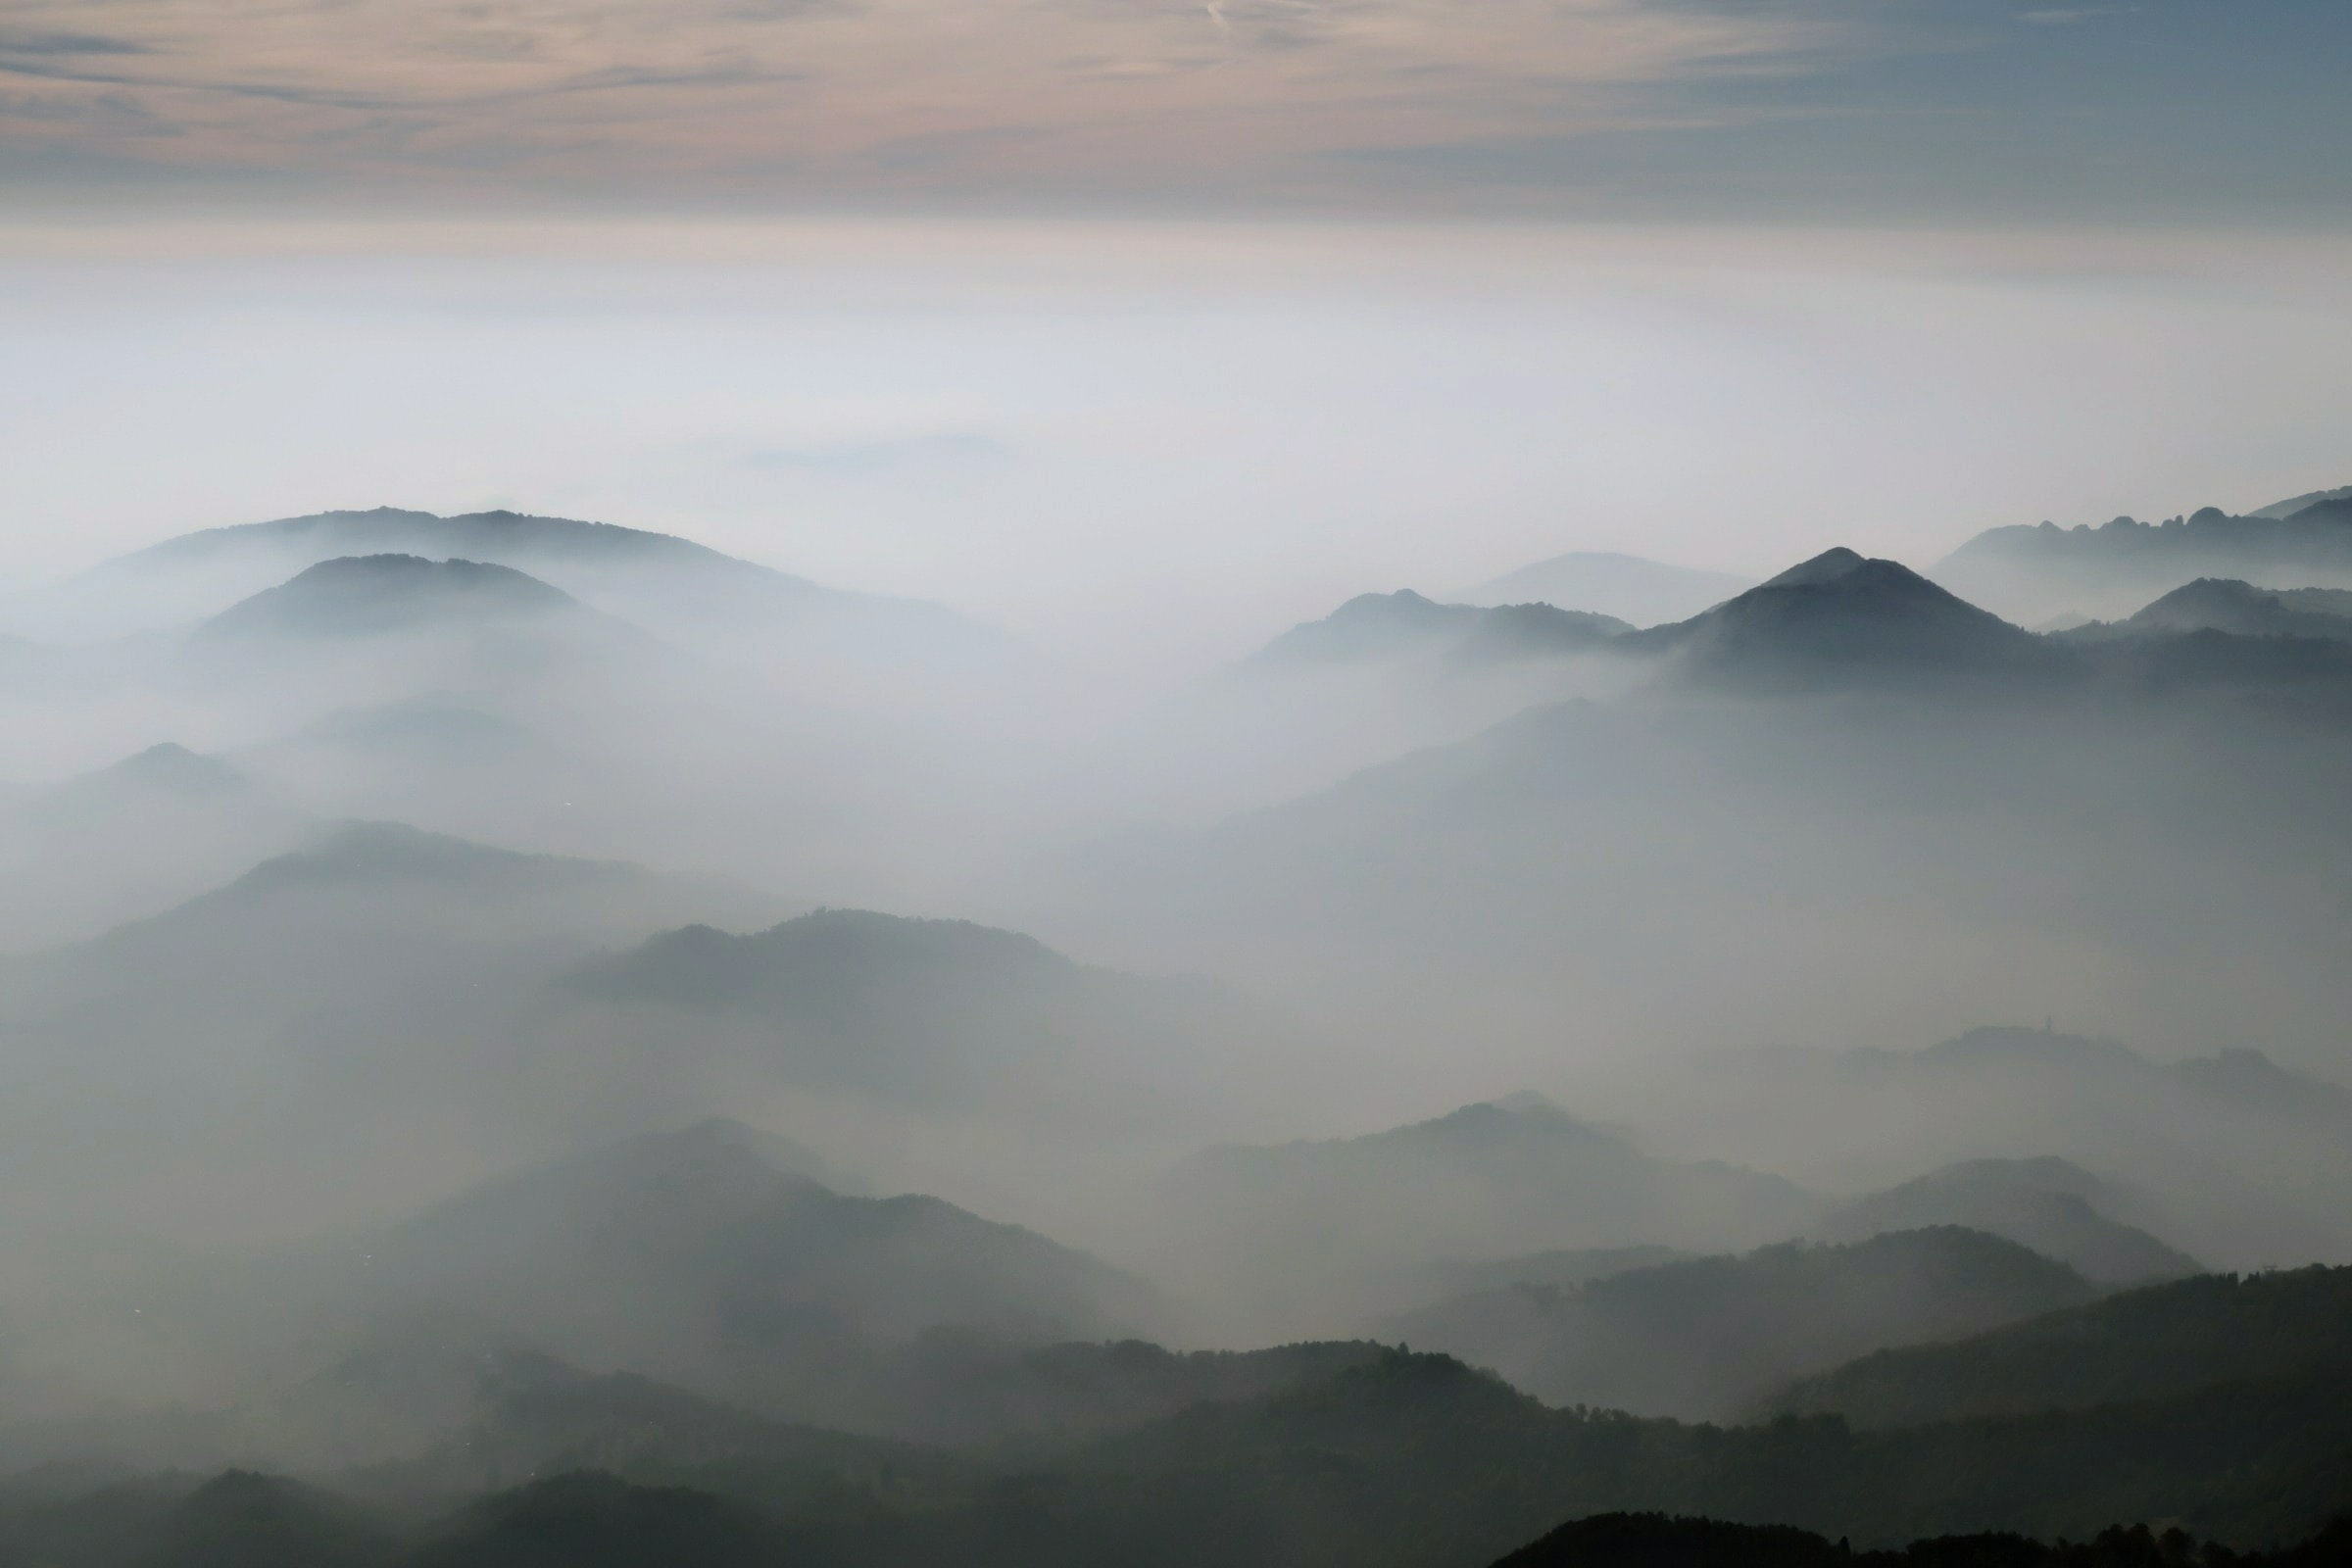 cloud-covered mountain